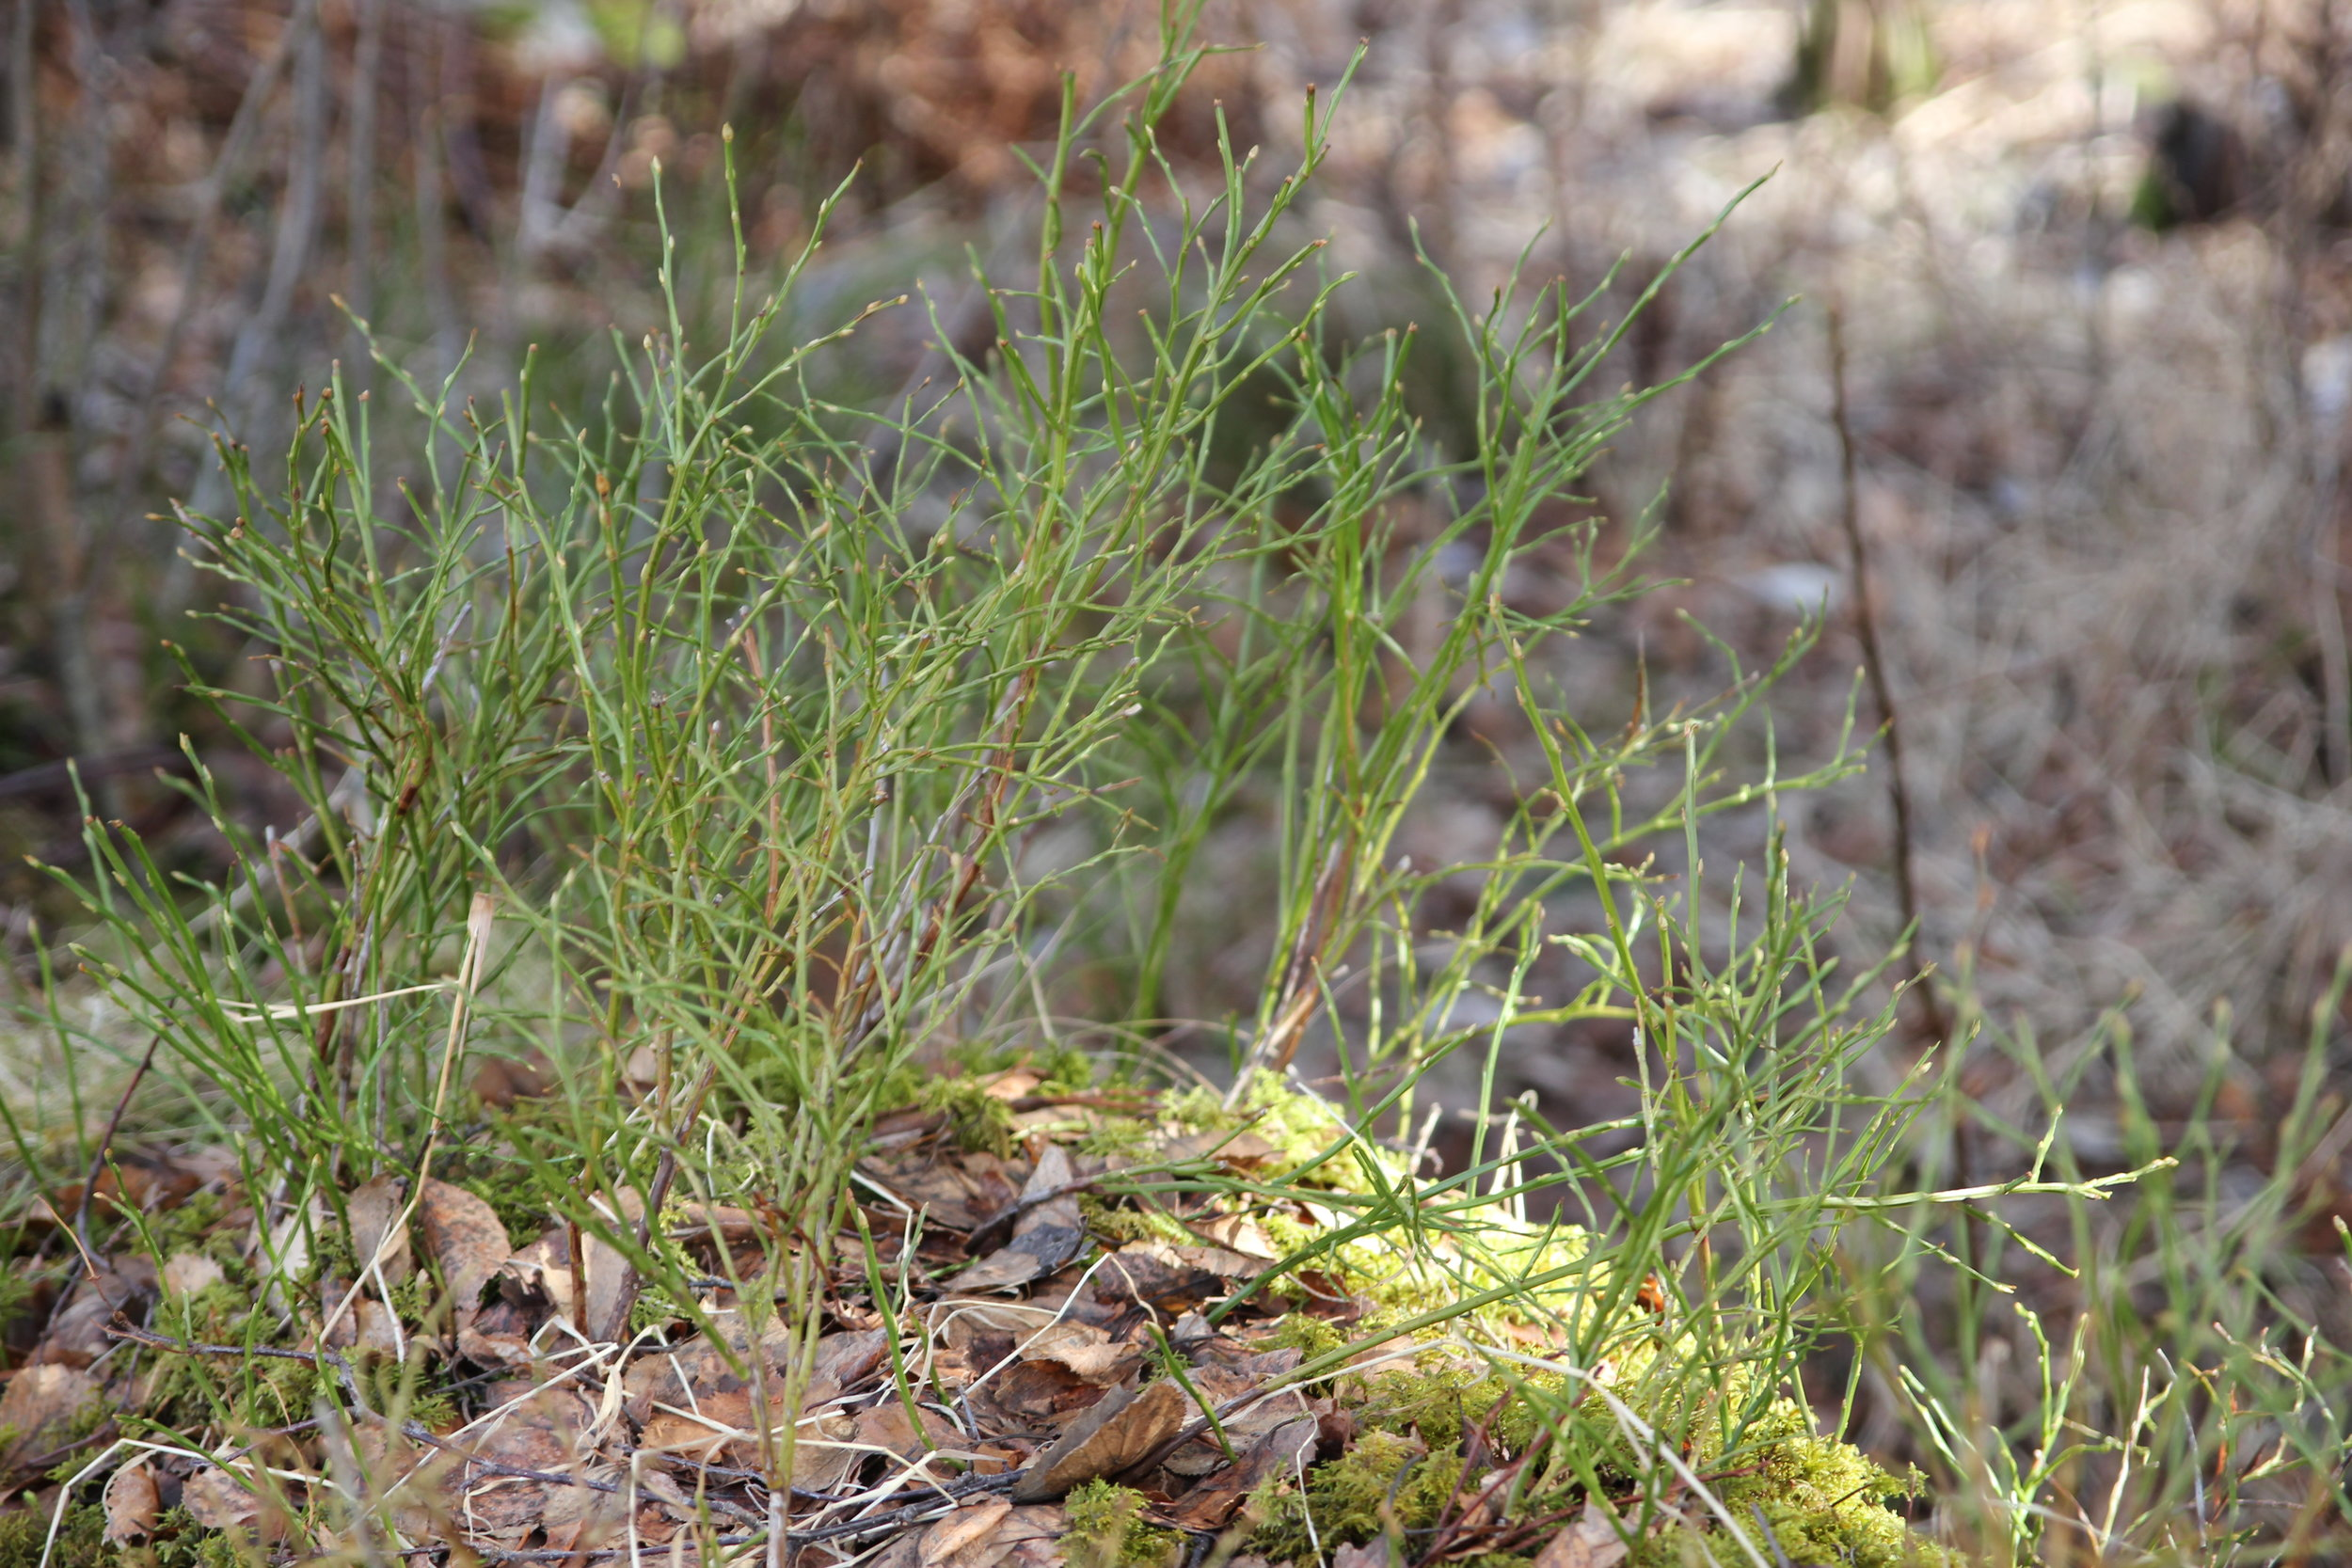 Some young Horsetail returning to the forest.